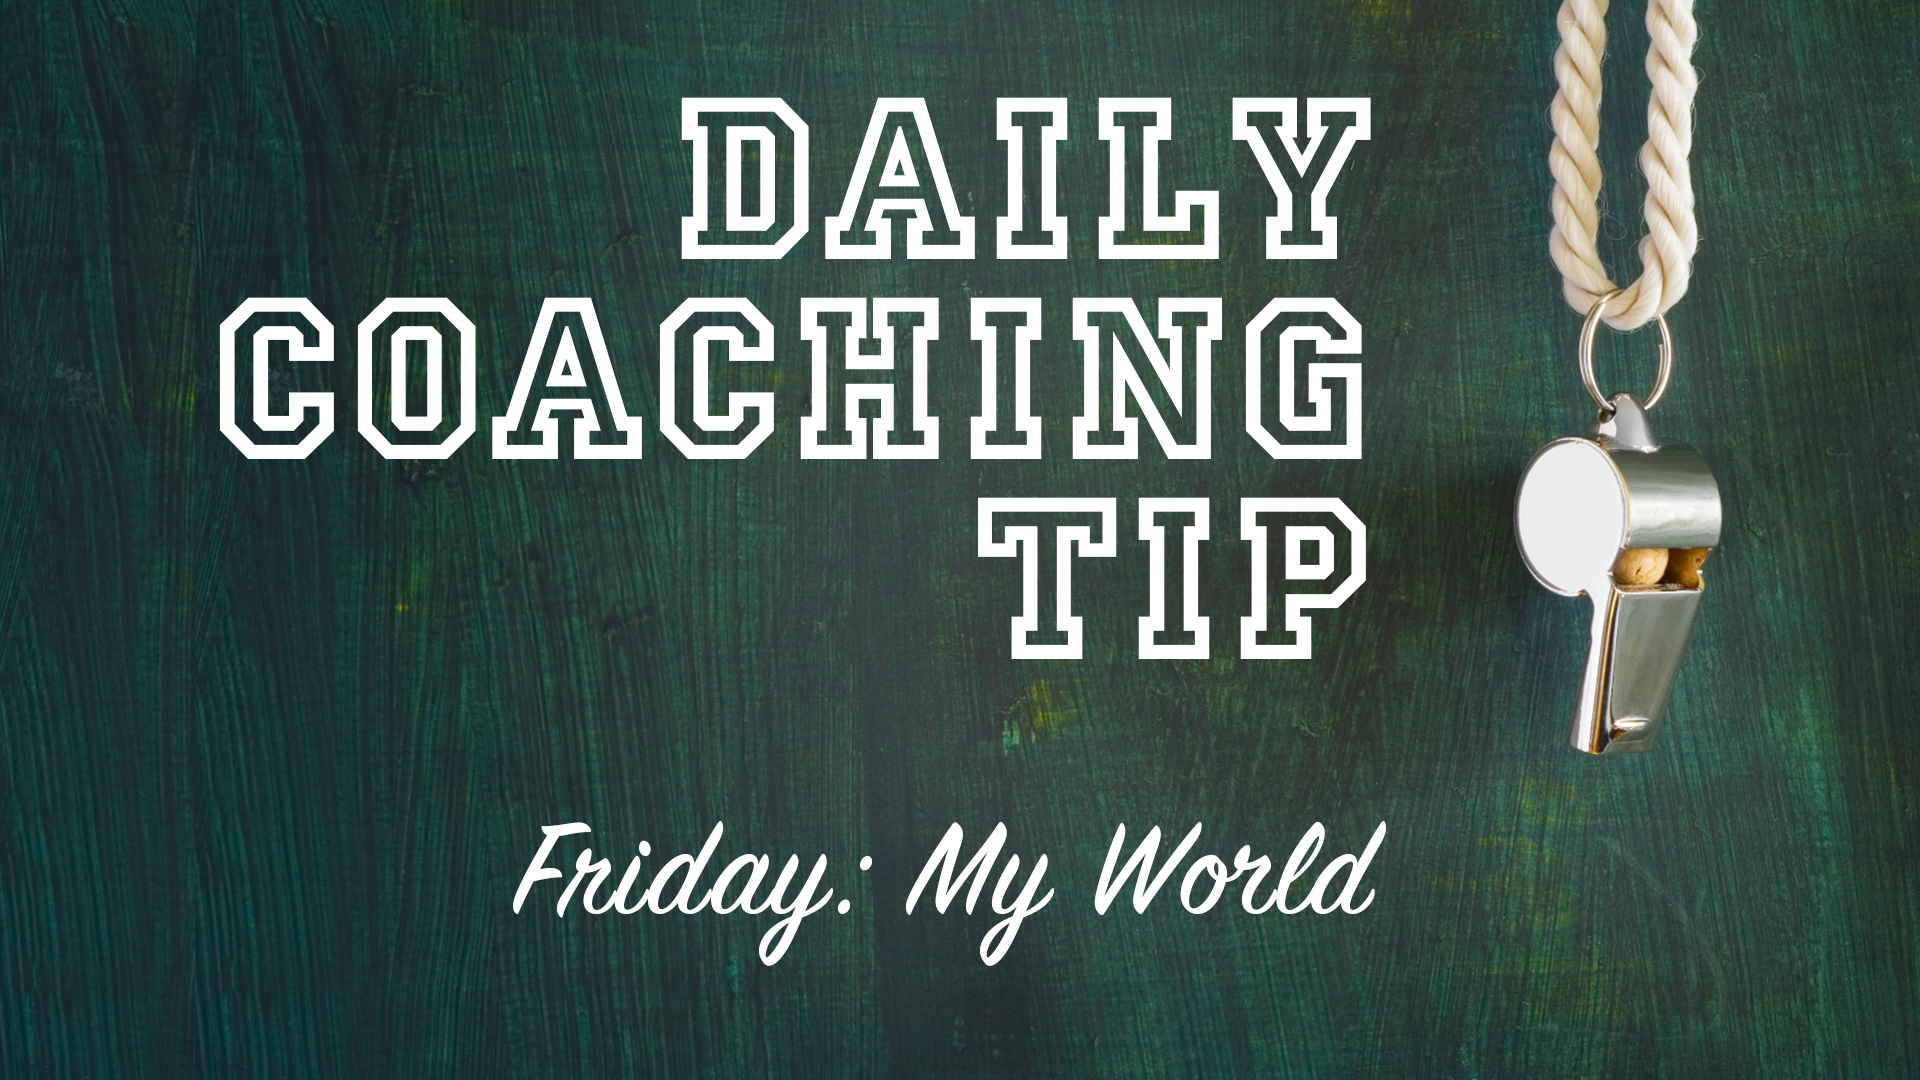 Daily Coaching Tip, Friday, May 27, 2016